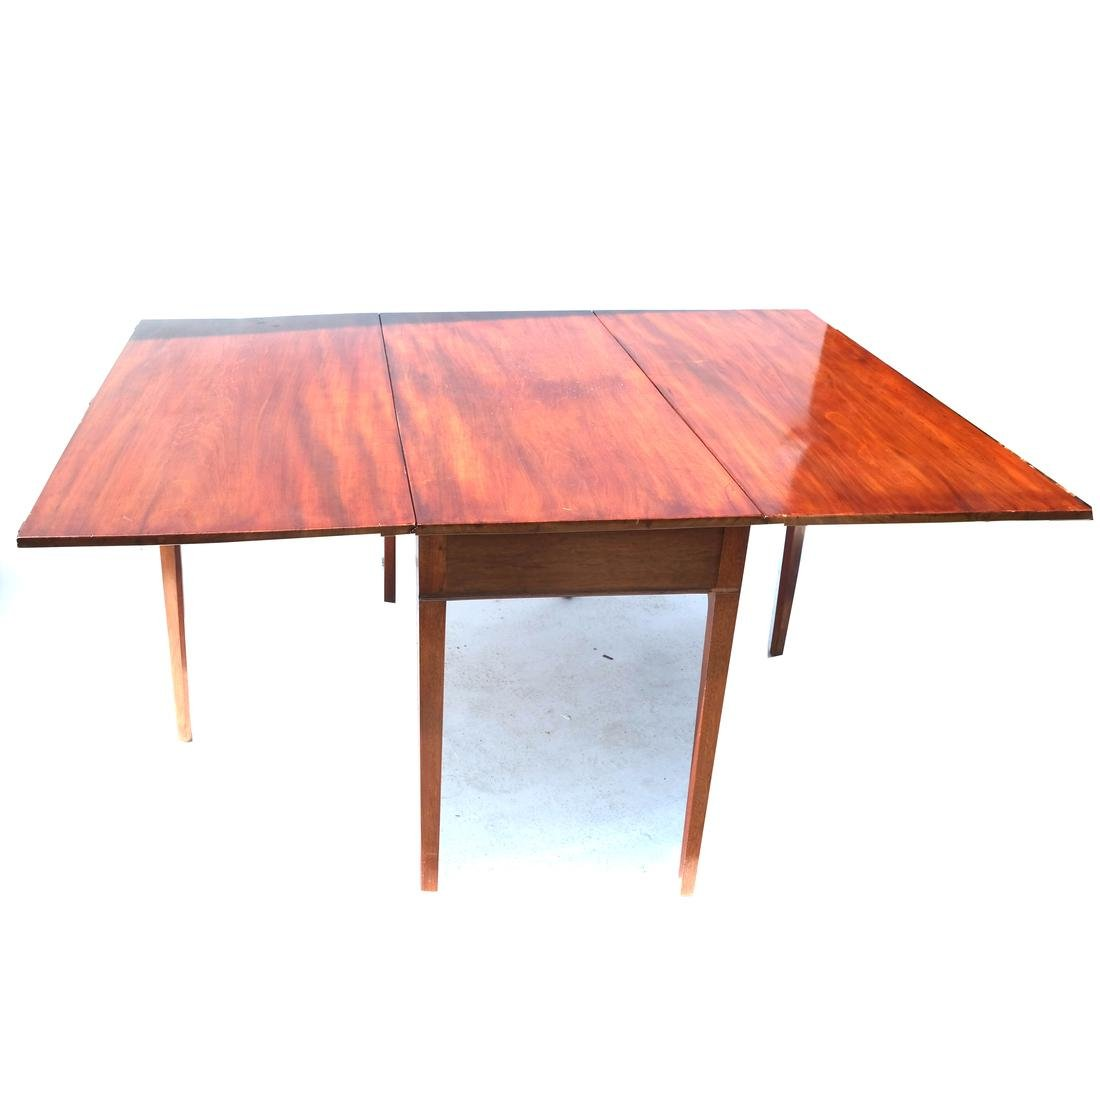 Federal 3-Part Dining Table - 3